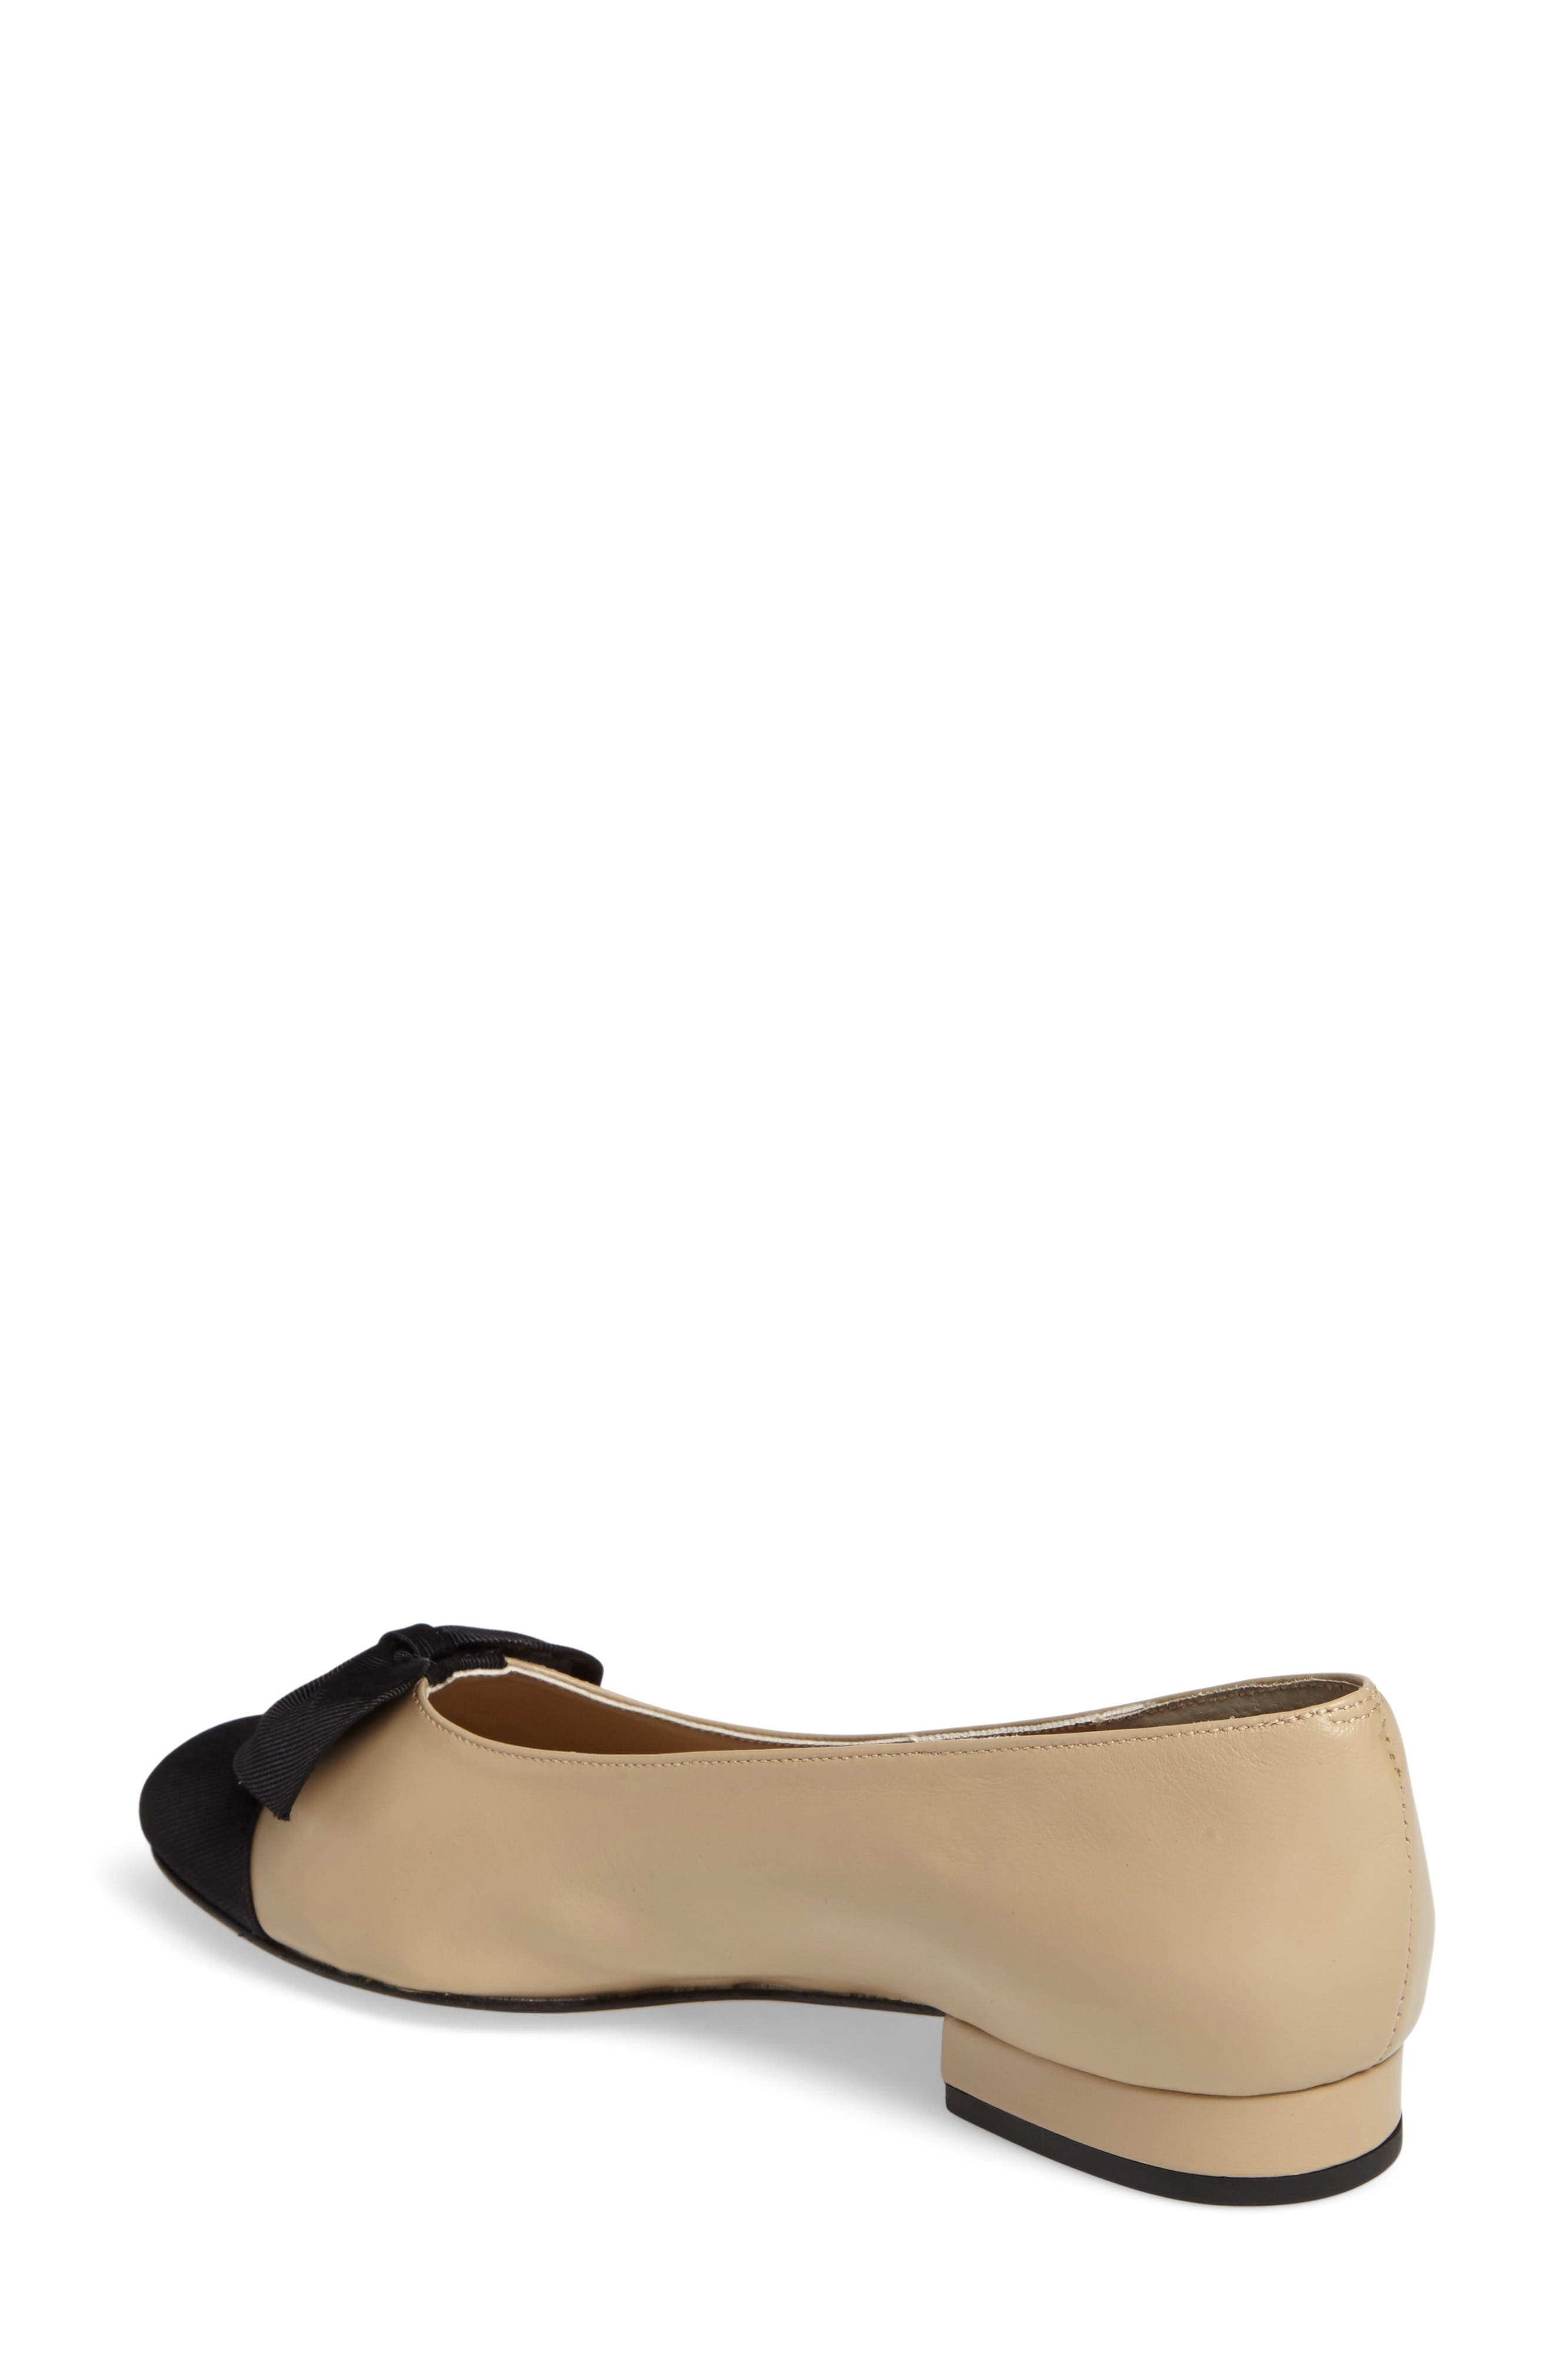 Favor Bow Flat,                             Alternate thumbnail 2, color,                             Pudding Leather